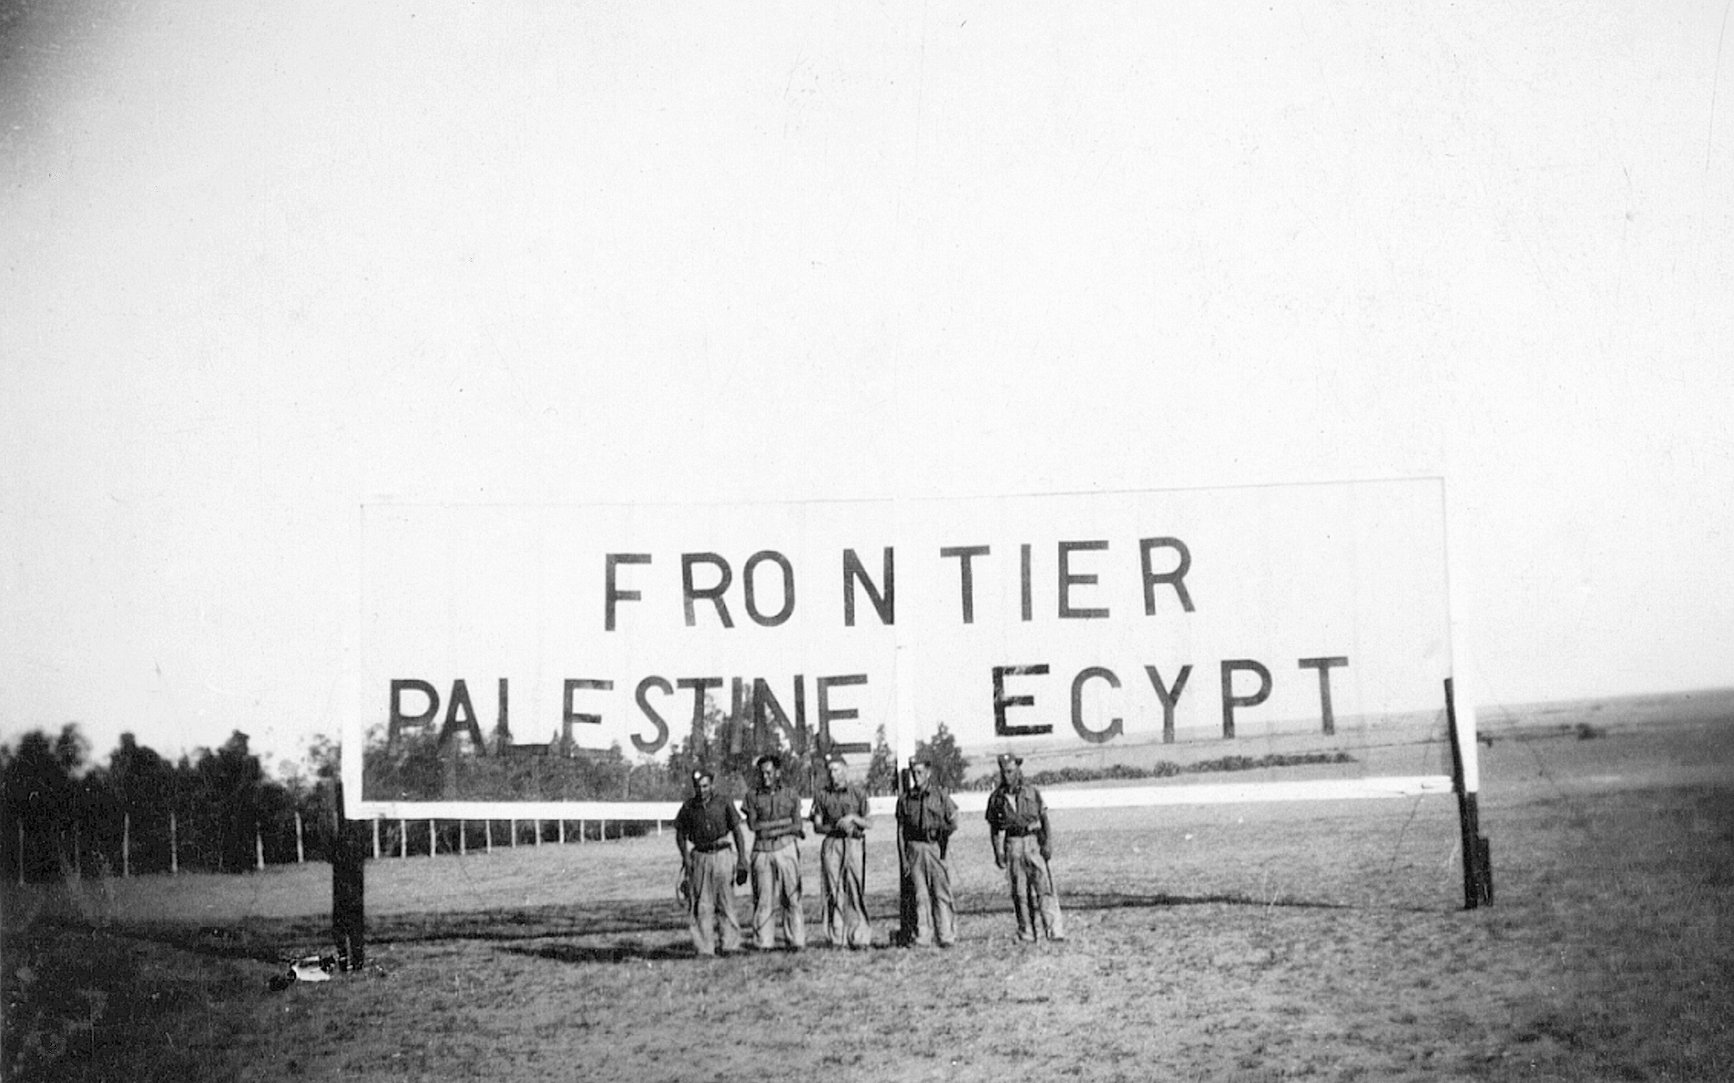 8th Hussars on the Egyptian - Palestine Frontier before the war, in 1938.